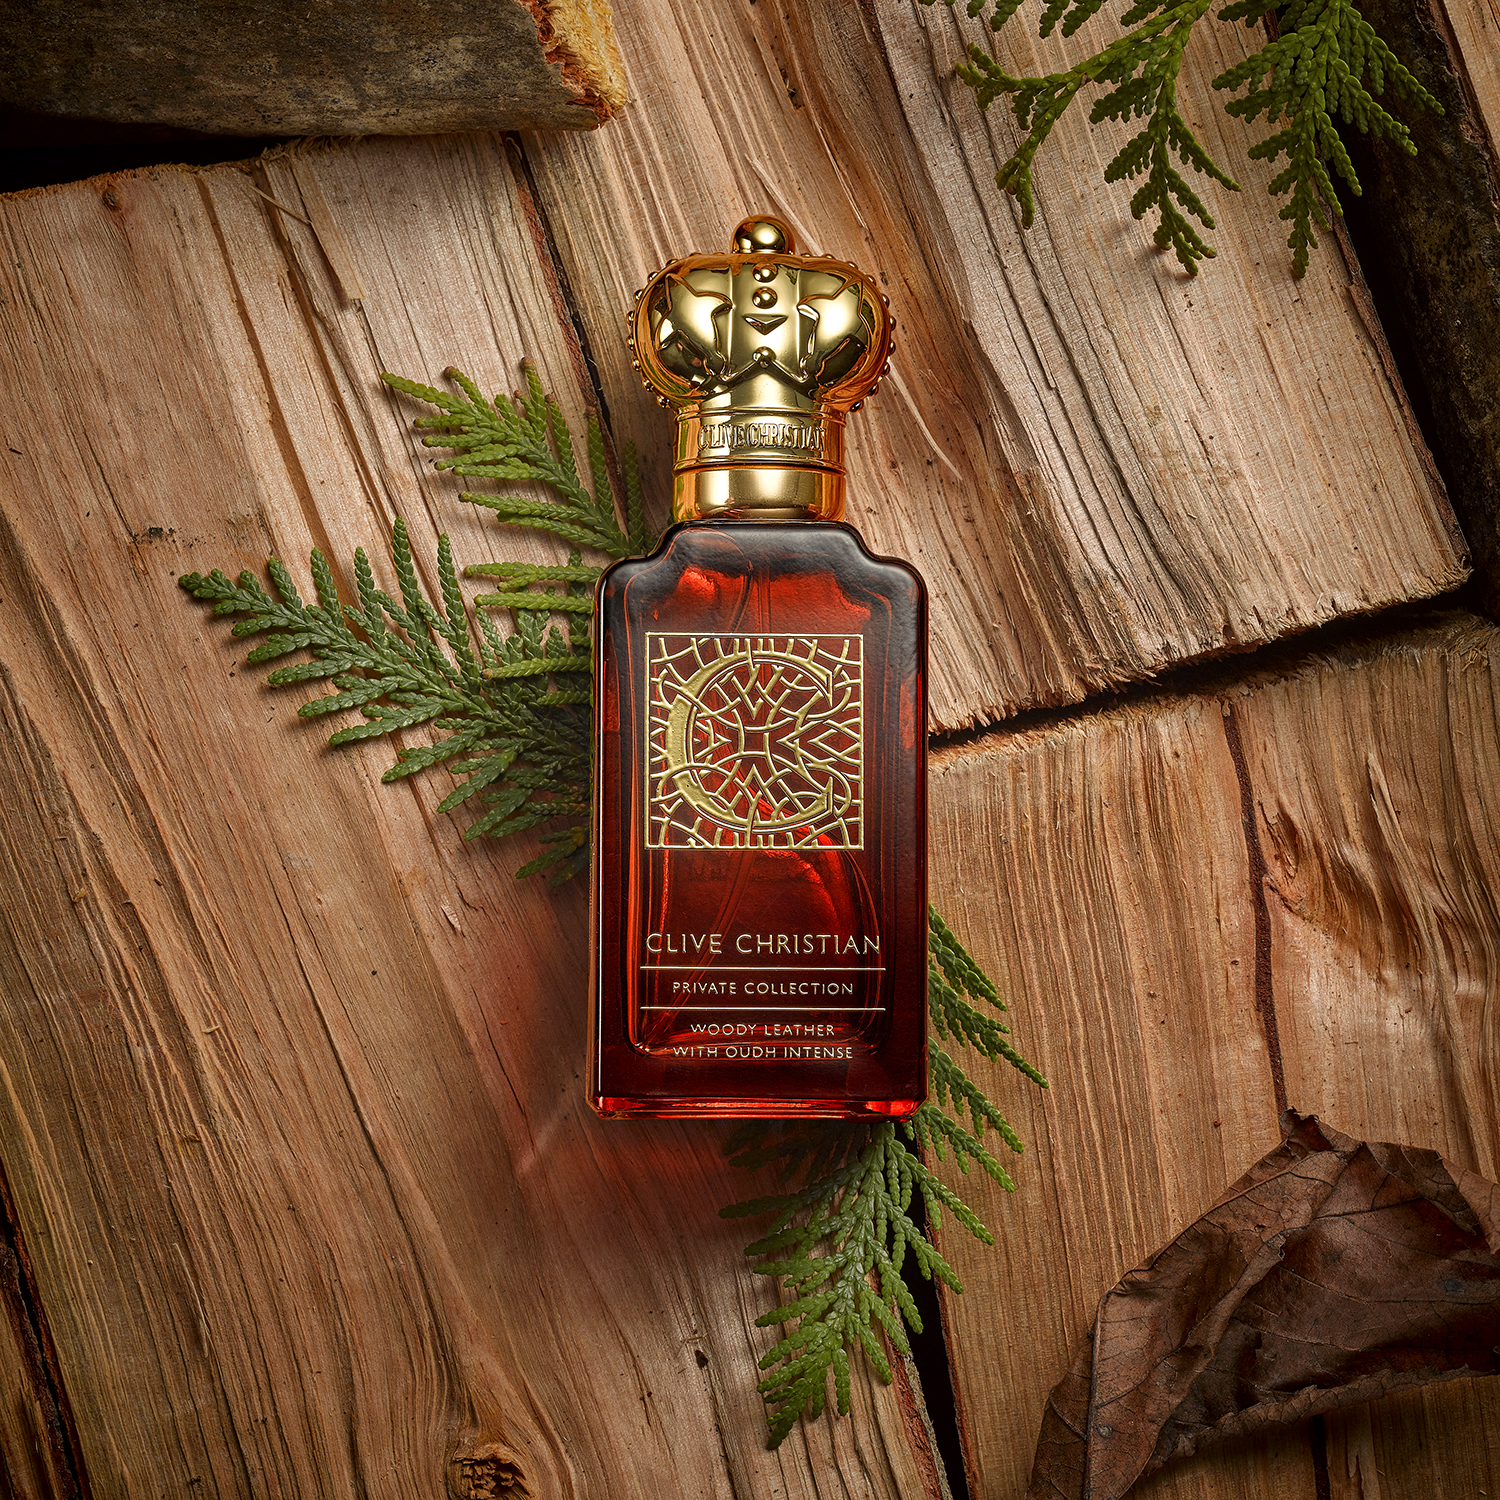 wood, bark, ferns, mens cosmetic fragrances. product photographer chris howlett